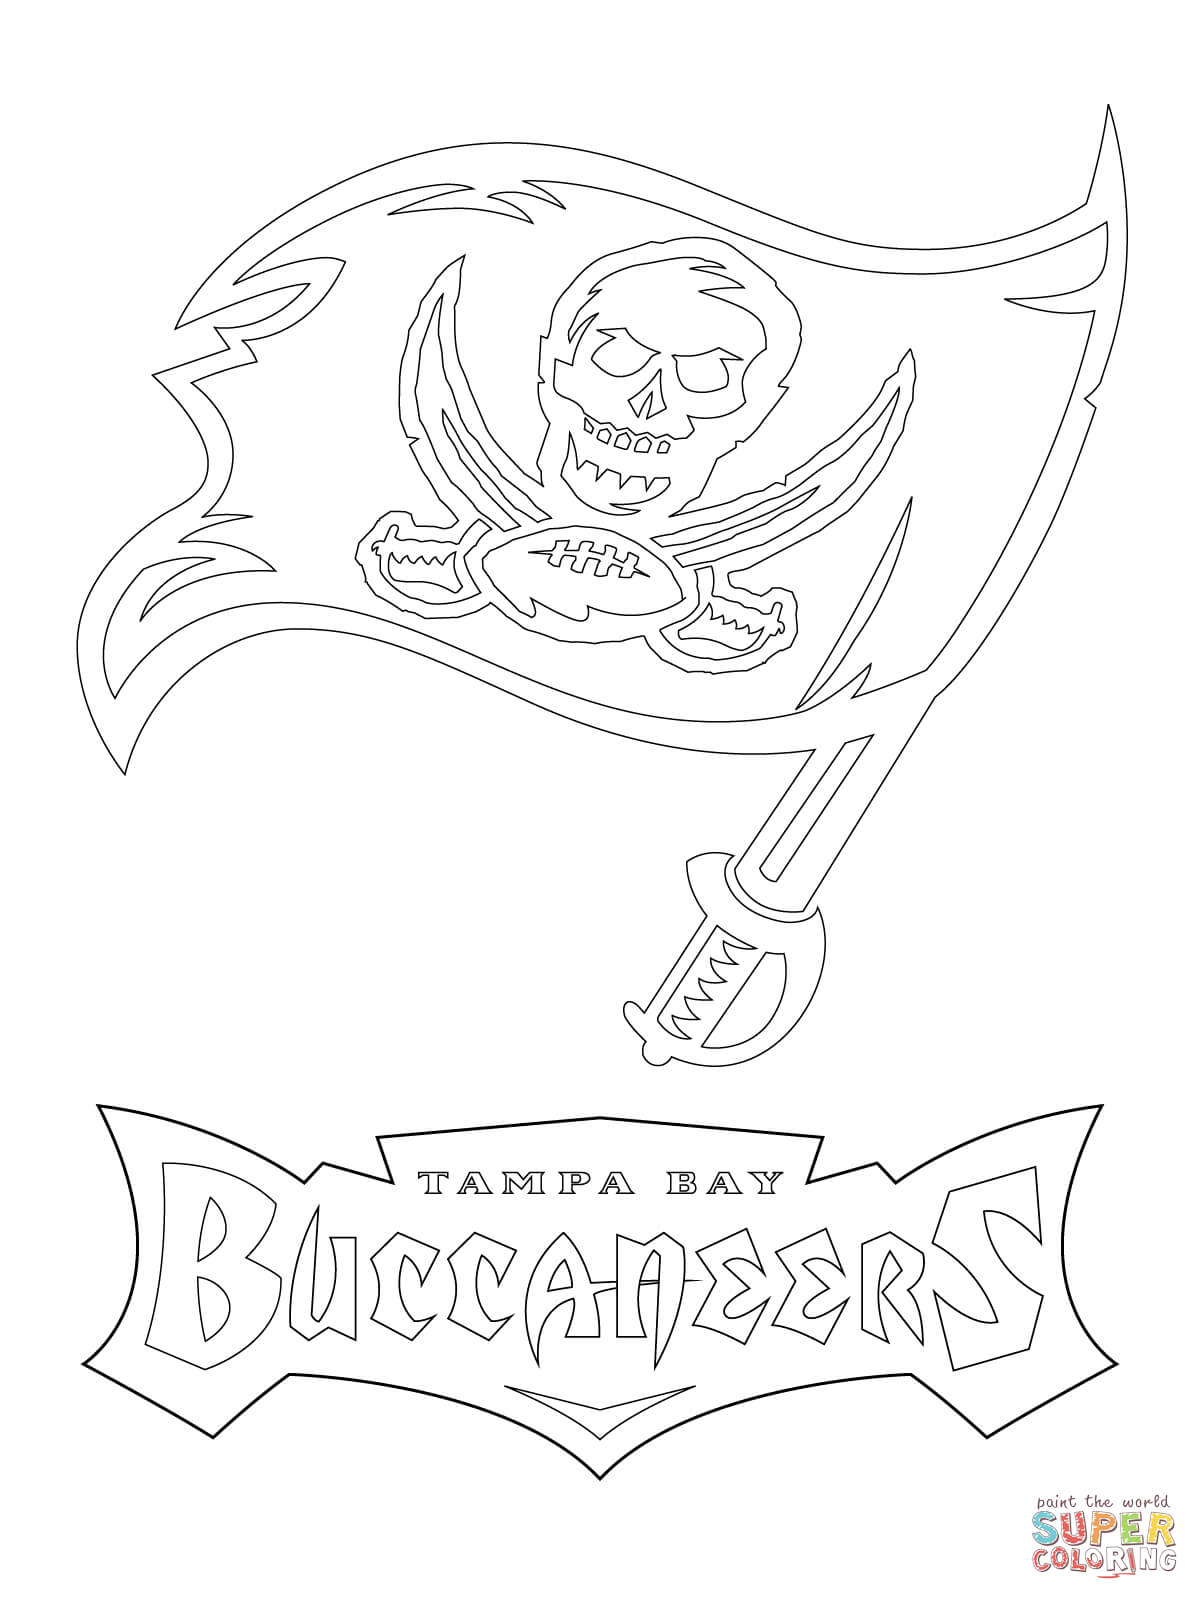 Tampa Bay Buccaneers Logo Coloring Page Free Printable Coloring Coloring Home